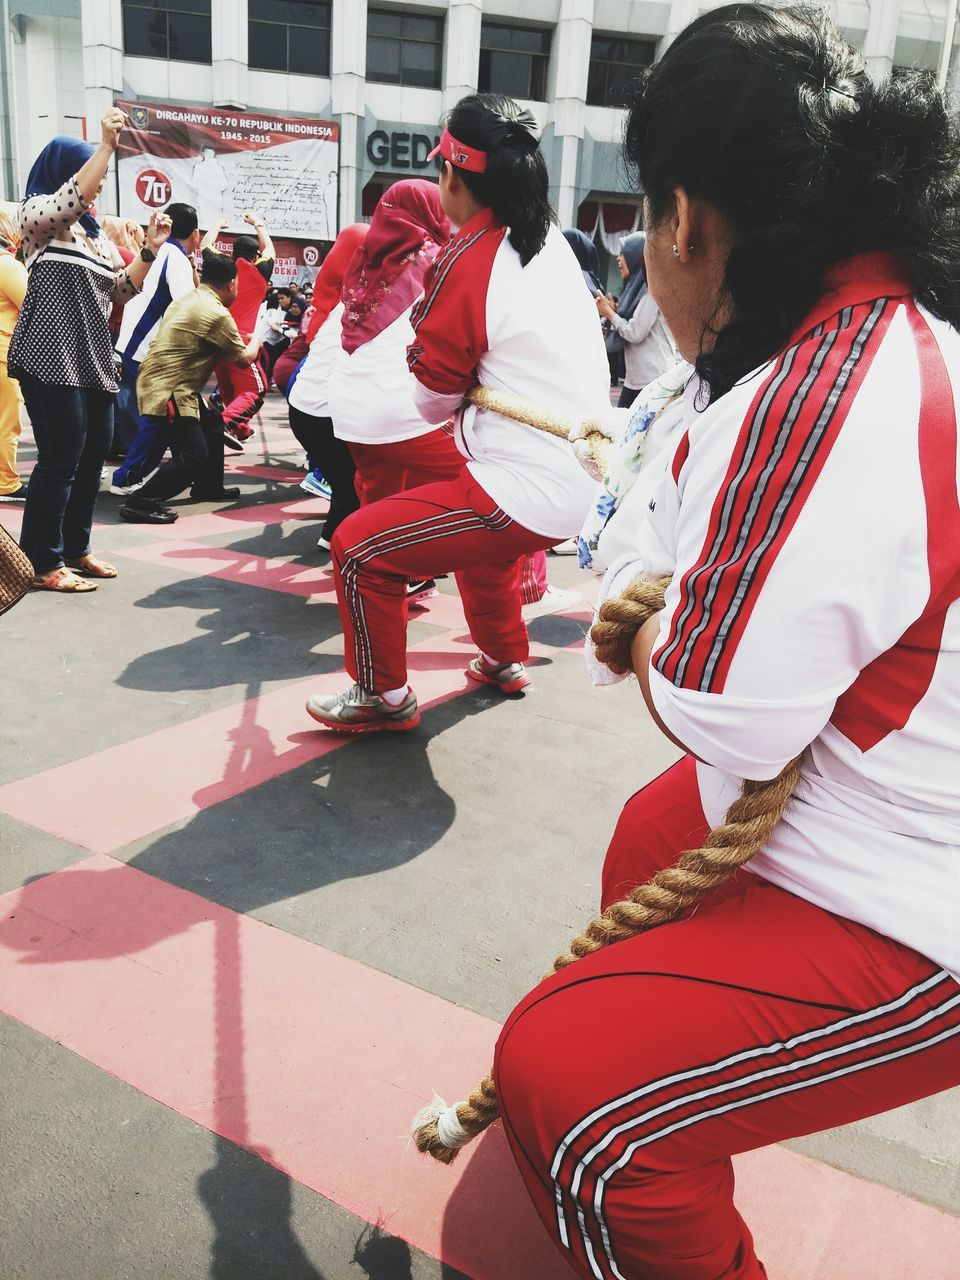 real people, cultures, traditional clothing, performance, traditional festival, medium group of people, street, men, tradition, day, women, outdoors, performing arts event, red, skill, traditional dancing, musician, city, adult, people